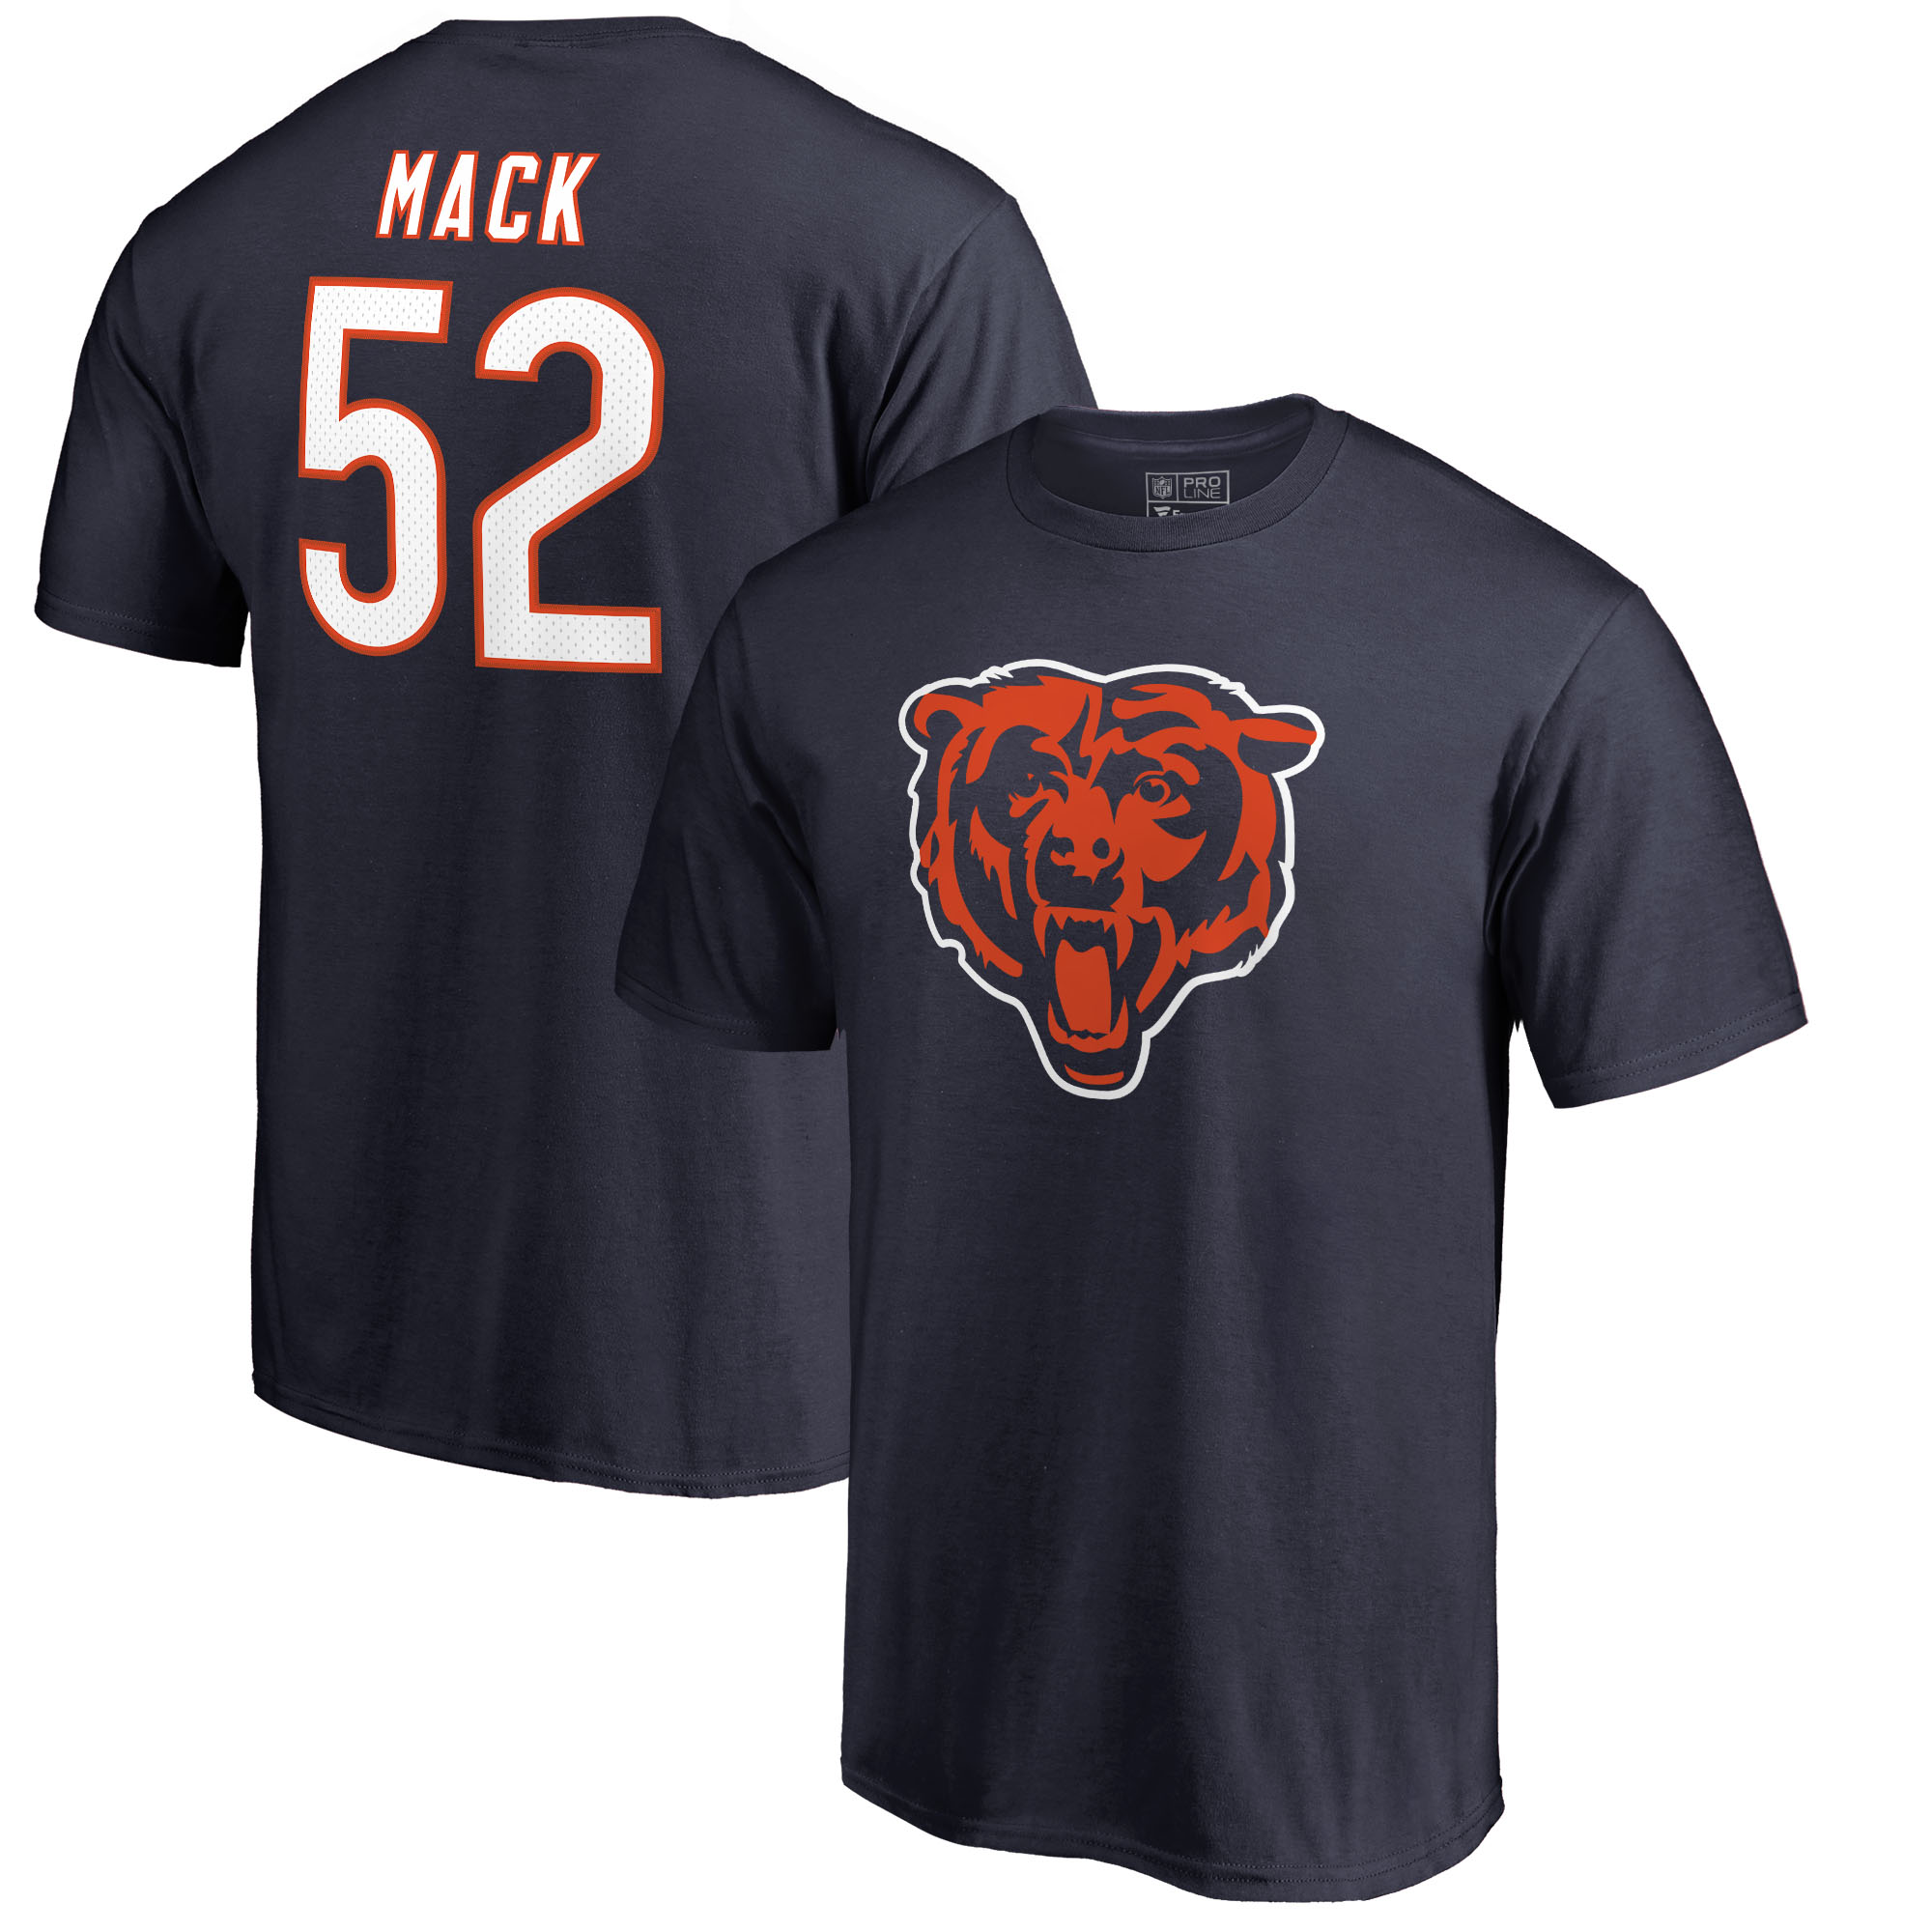 Khalil Mack Chicago Bears NFL Pro Line by Fanatics Branded Icon Name & Number T-Shirt - Navy